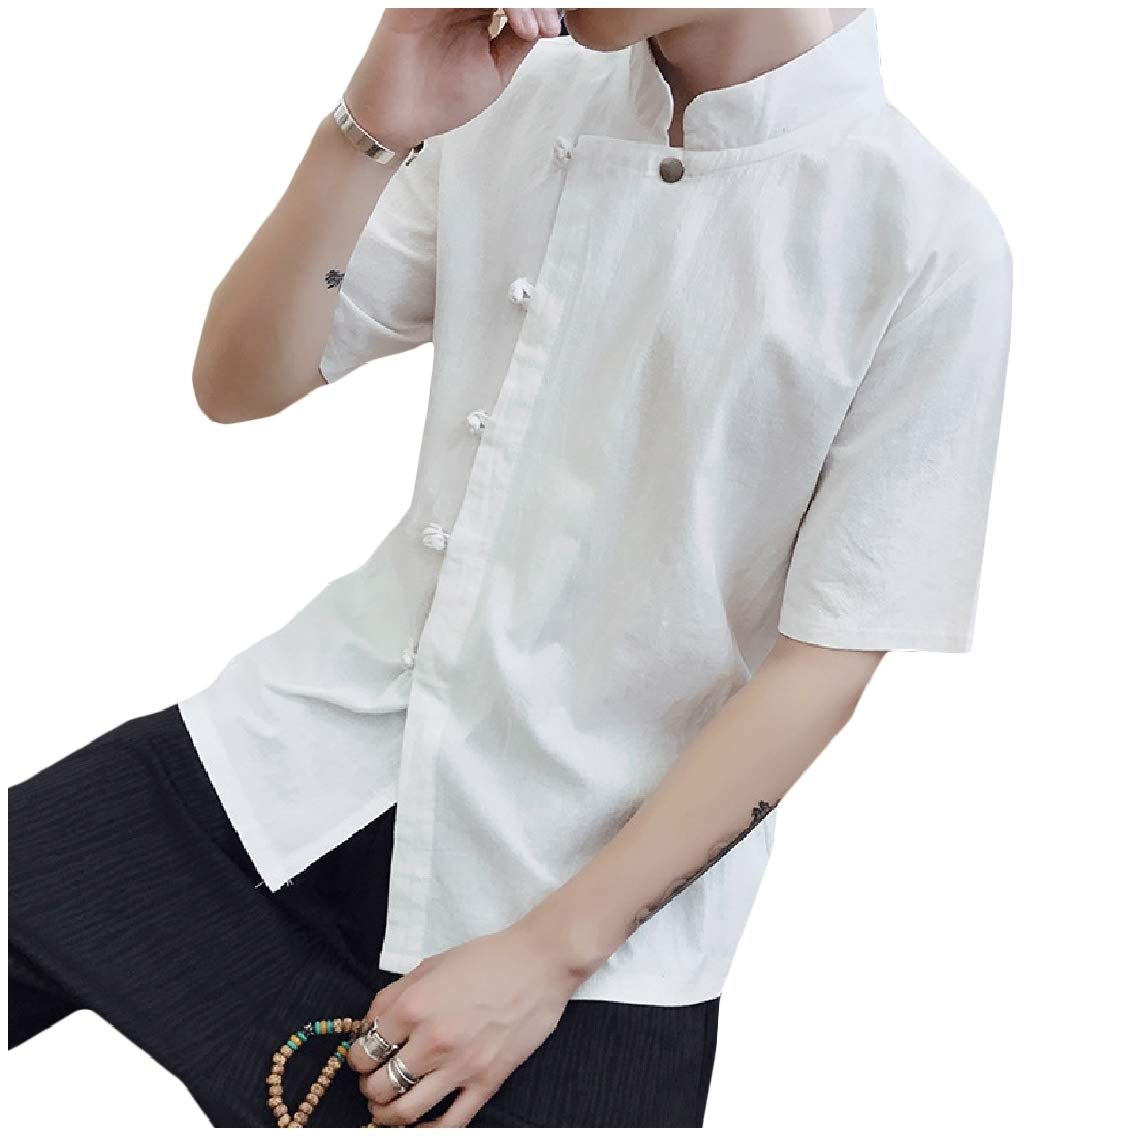 Coolred-Men Vintage Chinese Style Short Sleeves Stand Collar Oversized Tops Shirt